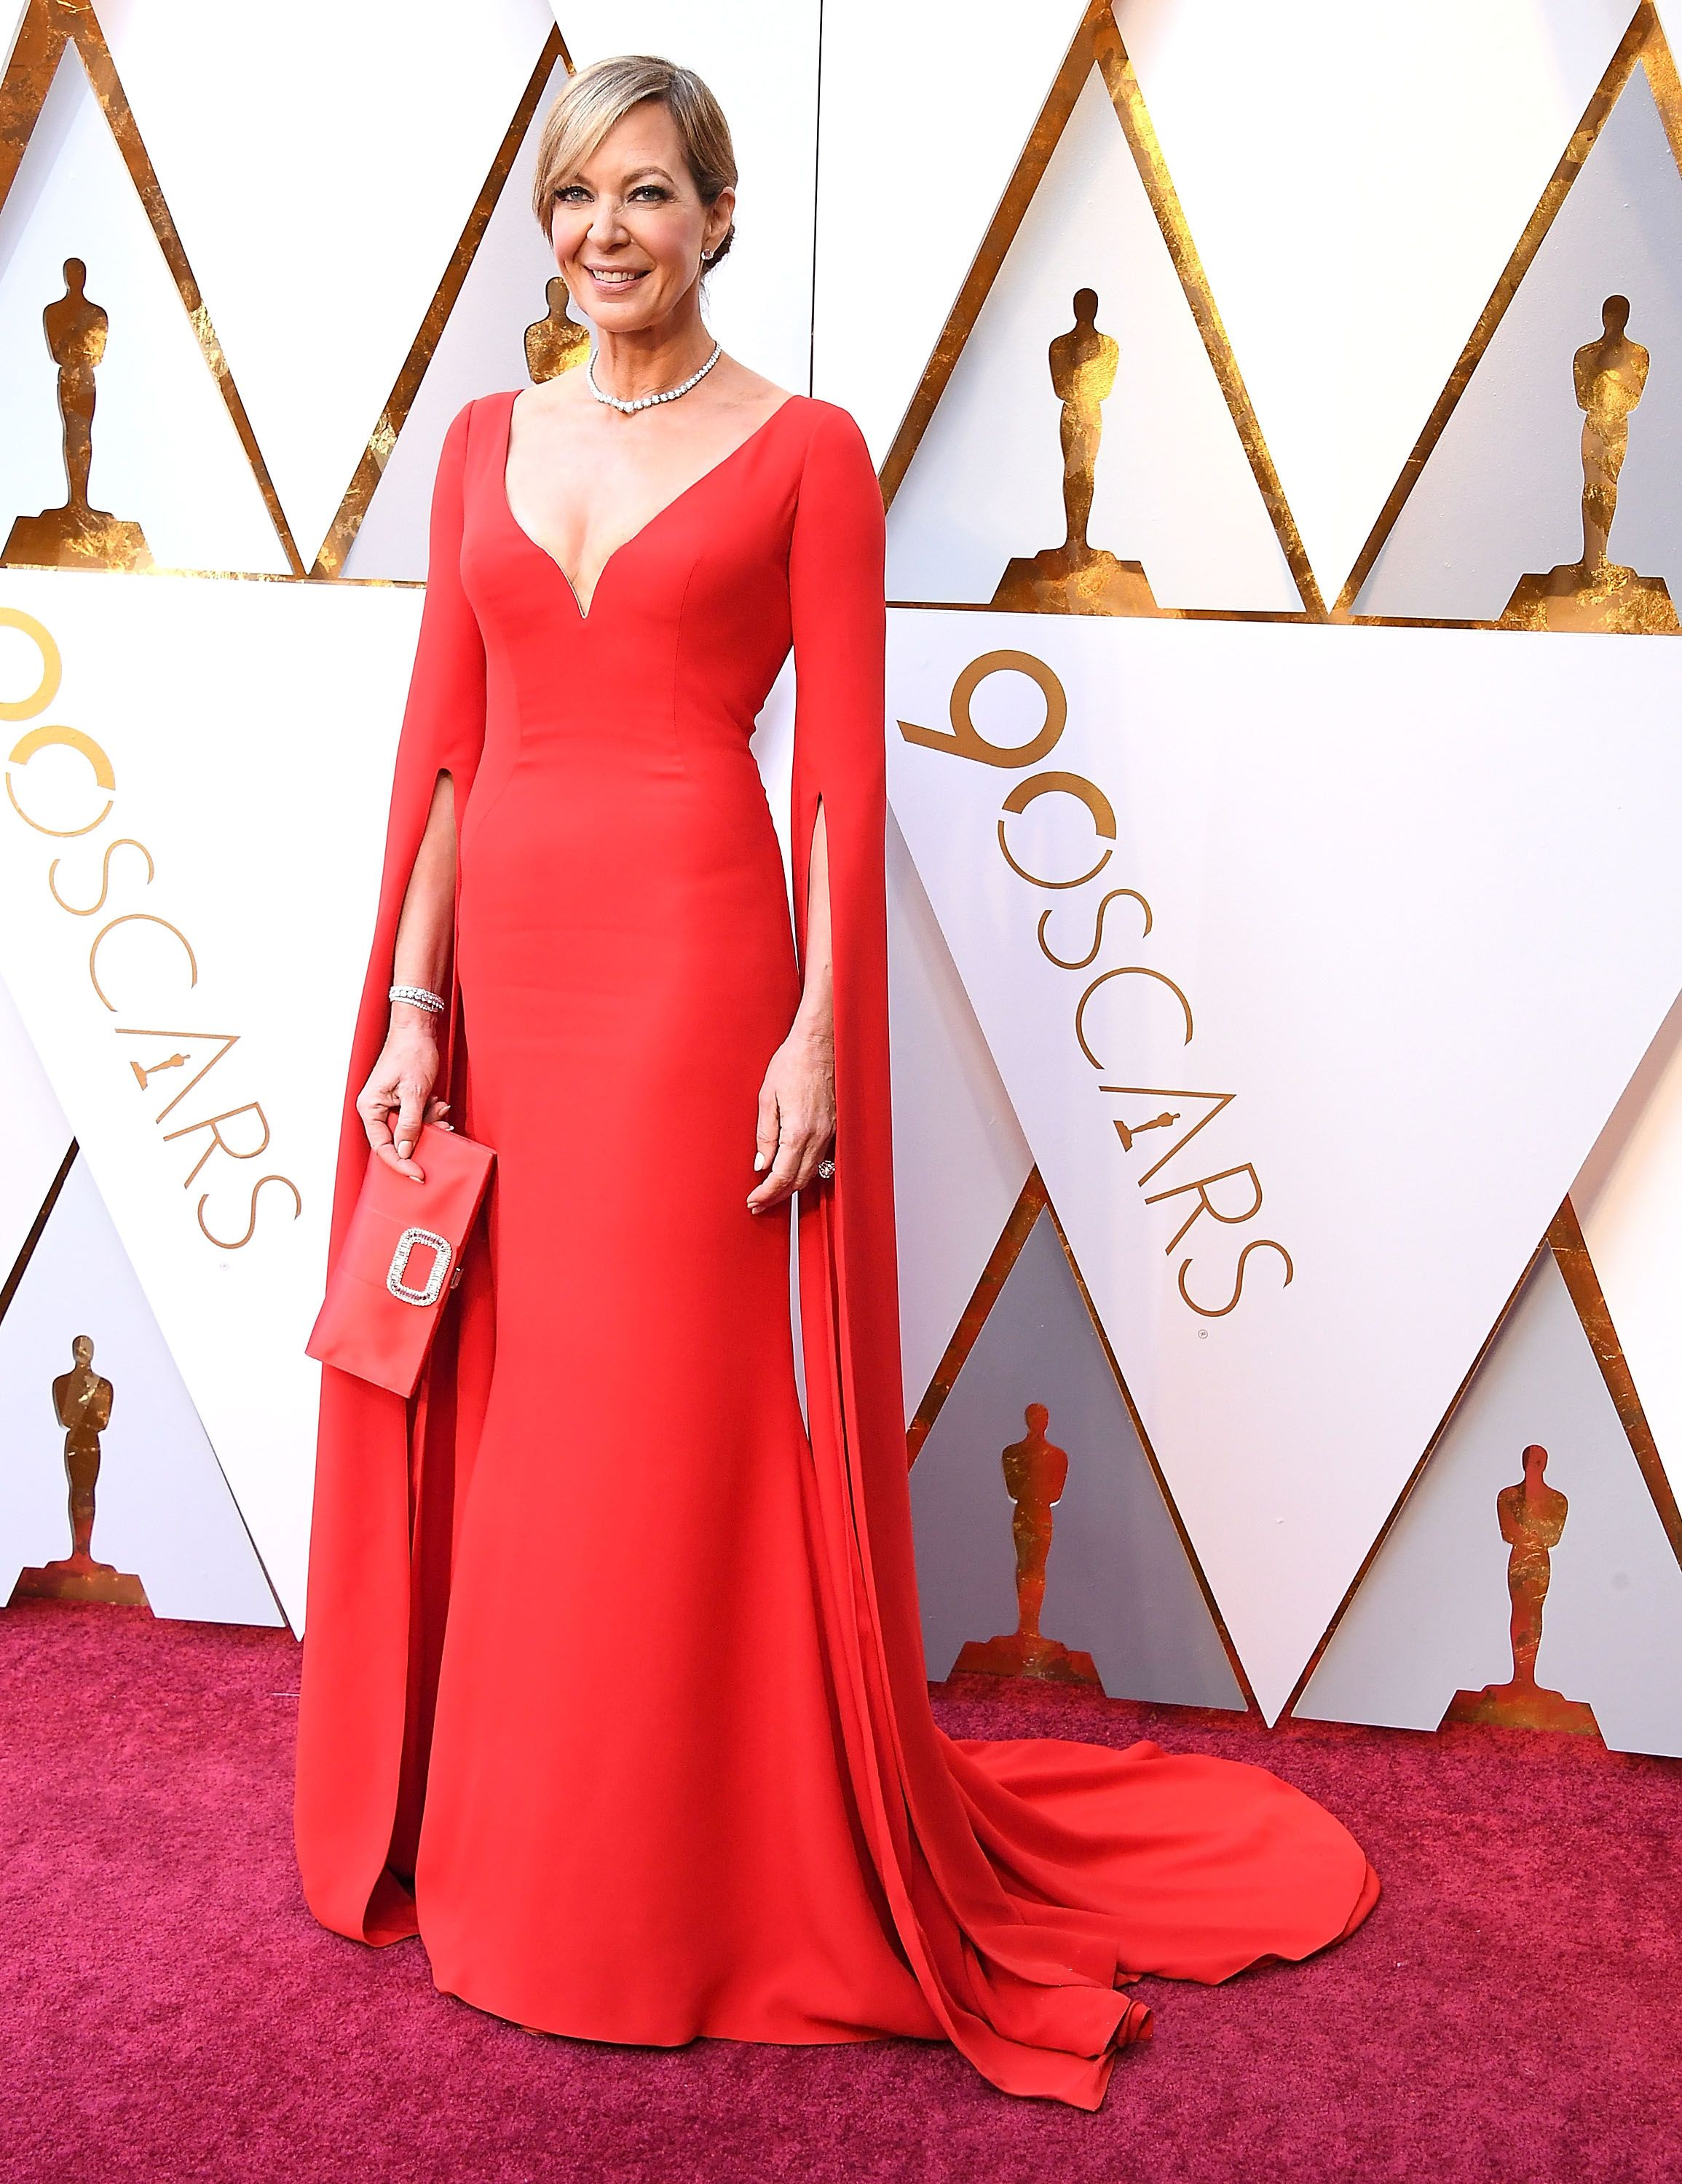 Janney picked a vivid red Reem Acra gown with a plunging neckline and extra-long sleeves for the 2018 Academy Awards—proof that the subtle details make the dress.